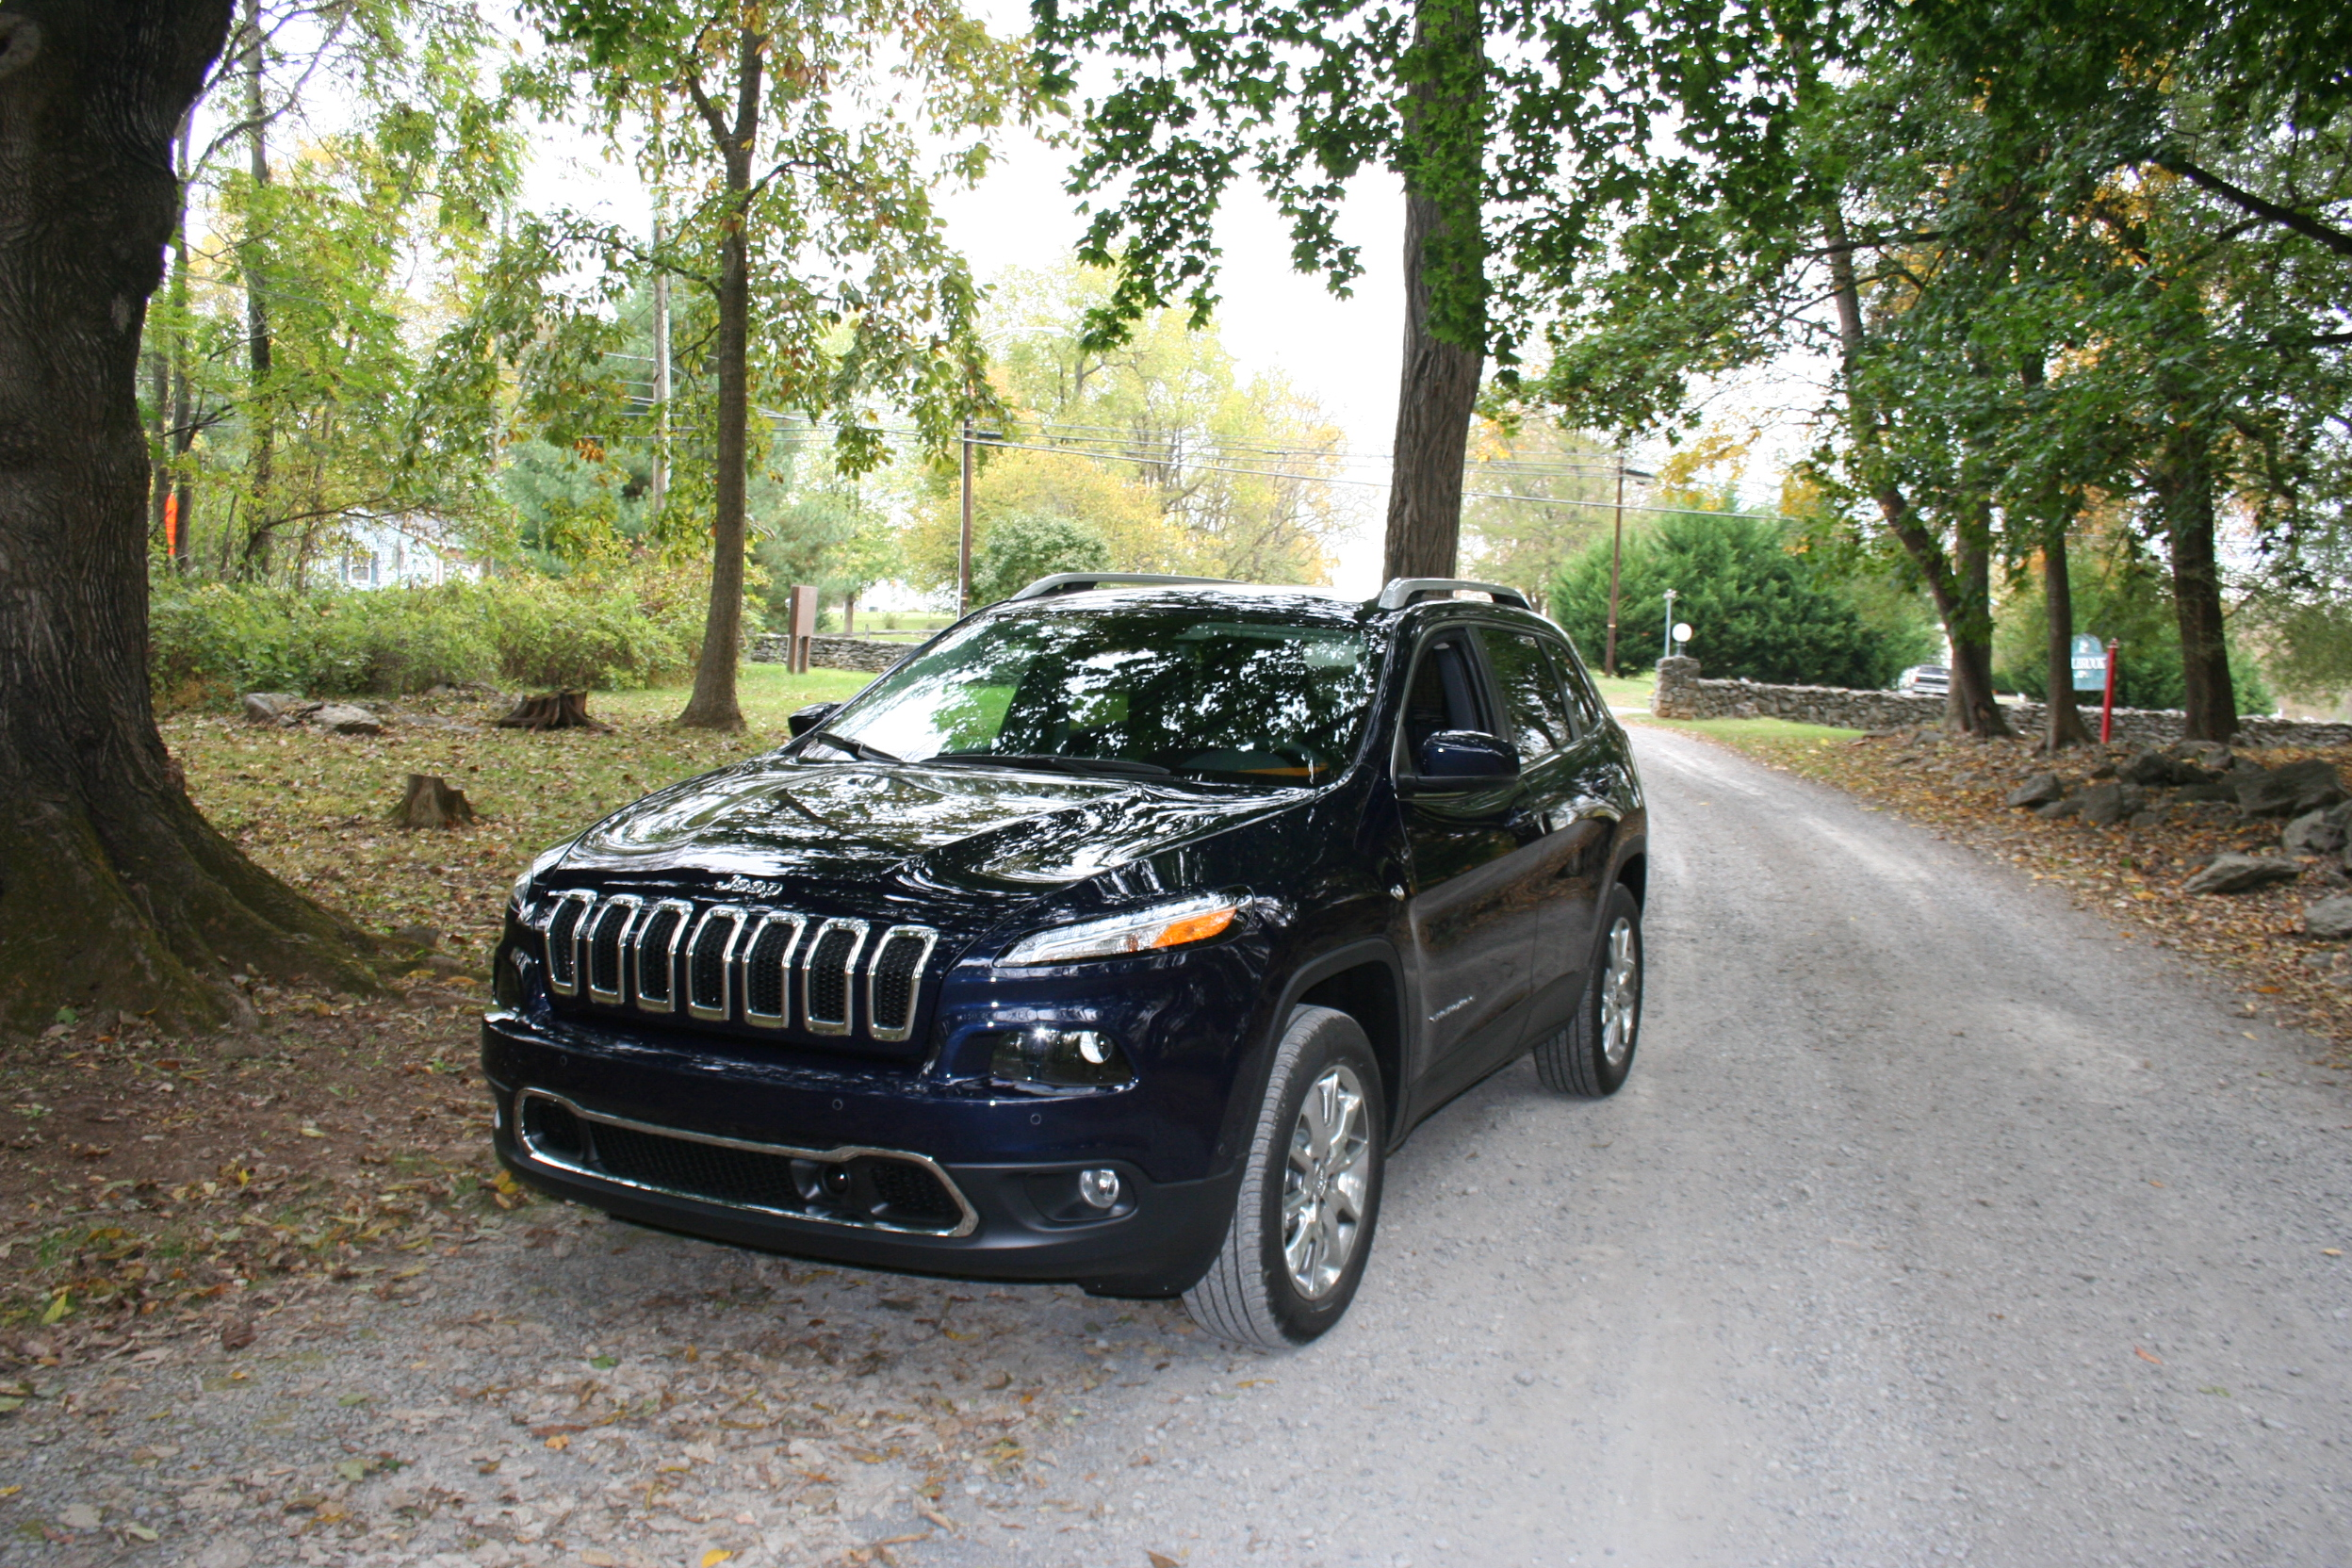 New Jeep Cherokee excels on-road, Grand Cherokee gets an eco diesel